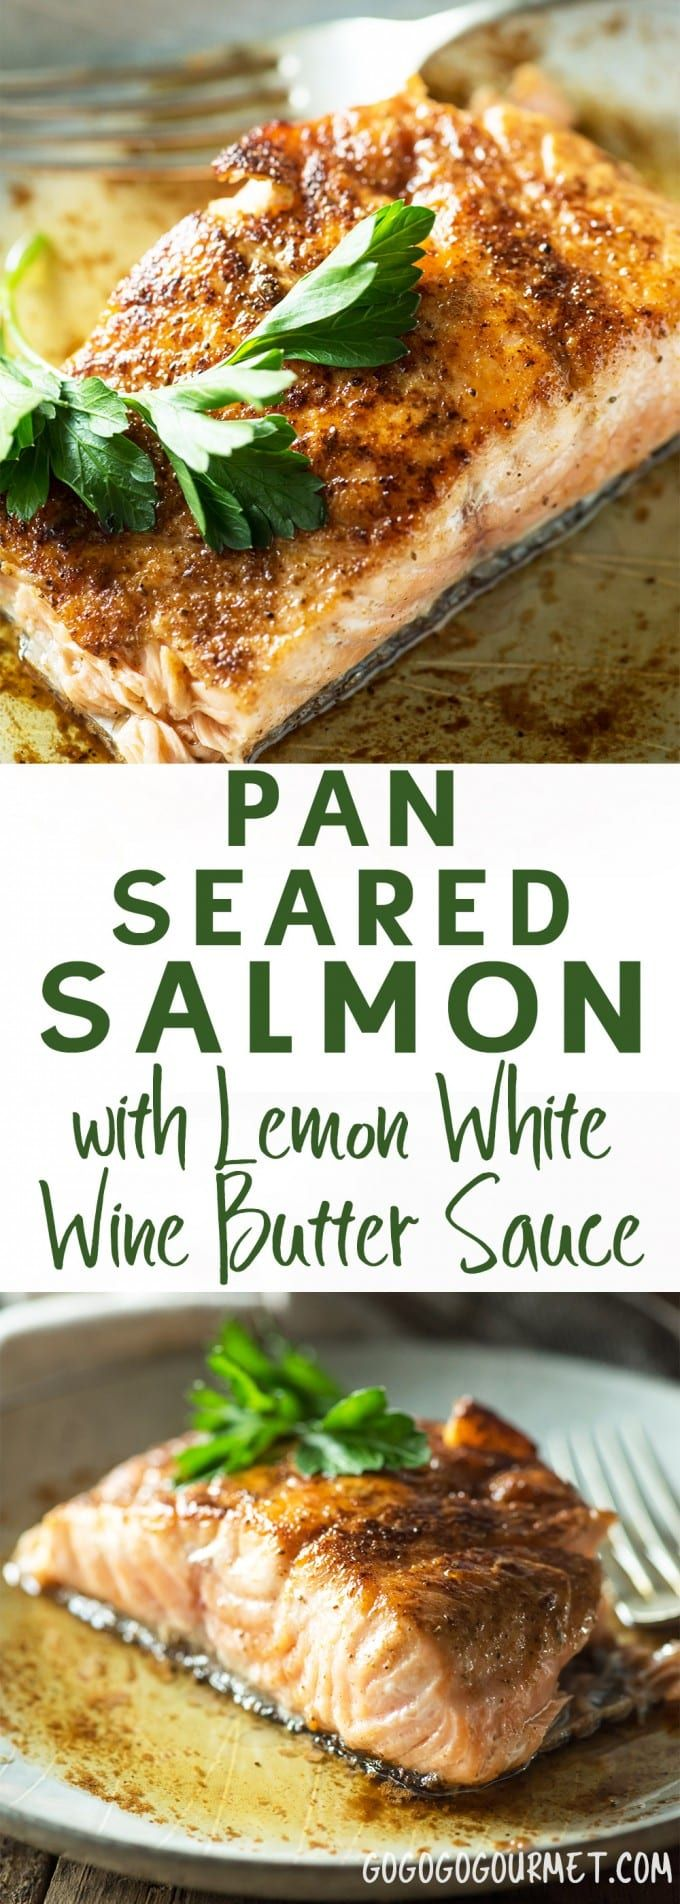 This Pan Seared Salmon with Lemon White Wine Butter Sauce is a fast and easy salmon recipe for busy weeknights. via @gogogogourmet #searedsalmonrecipes